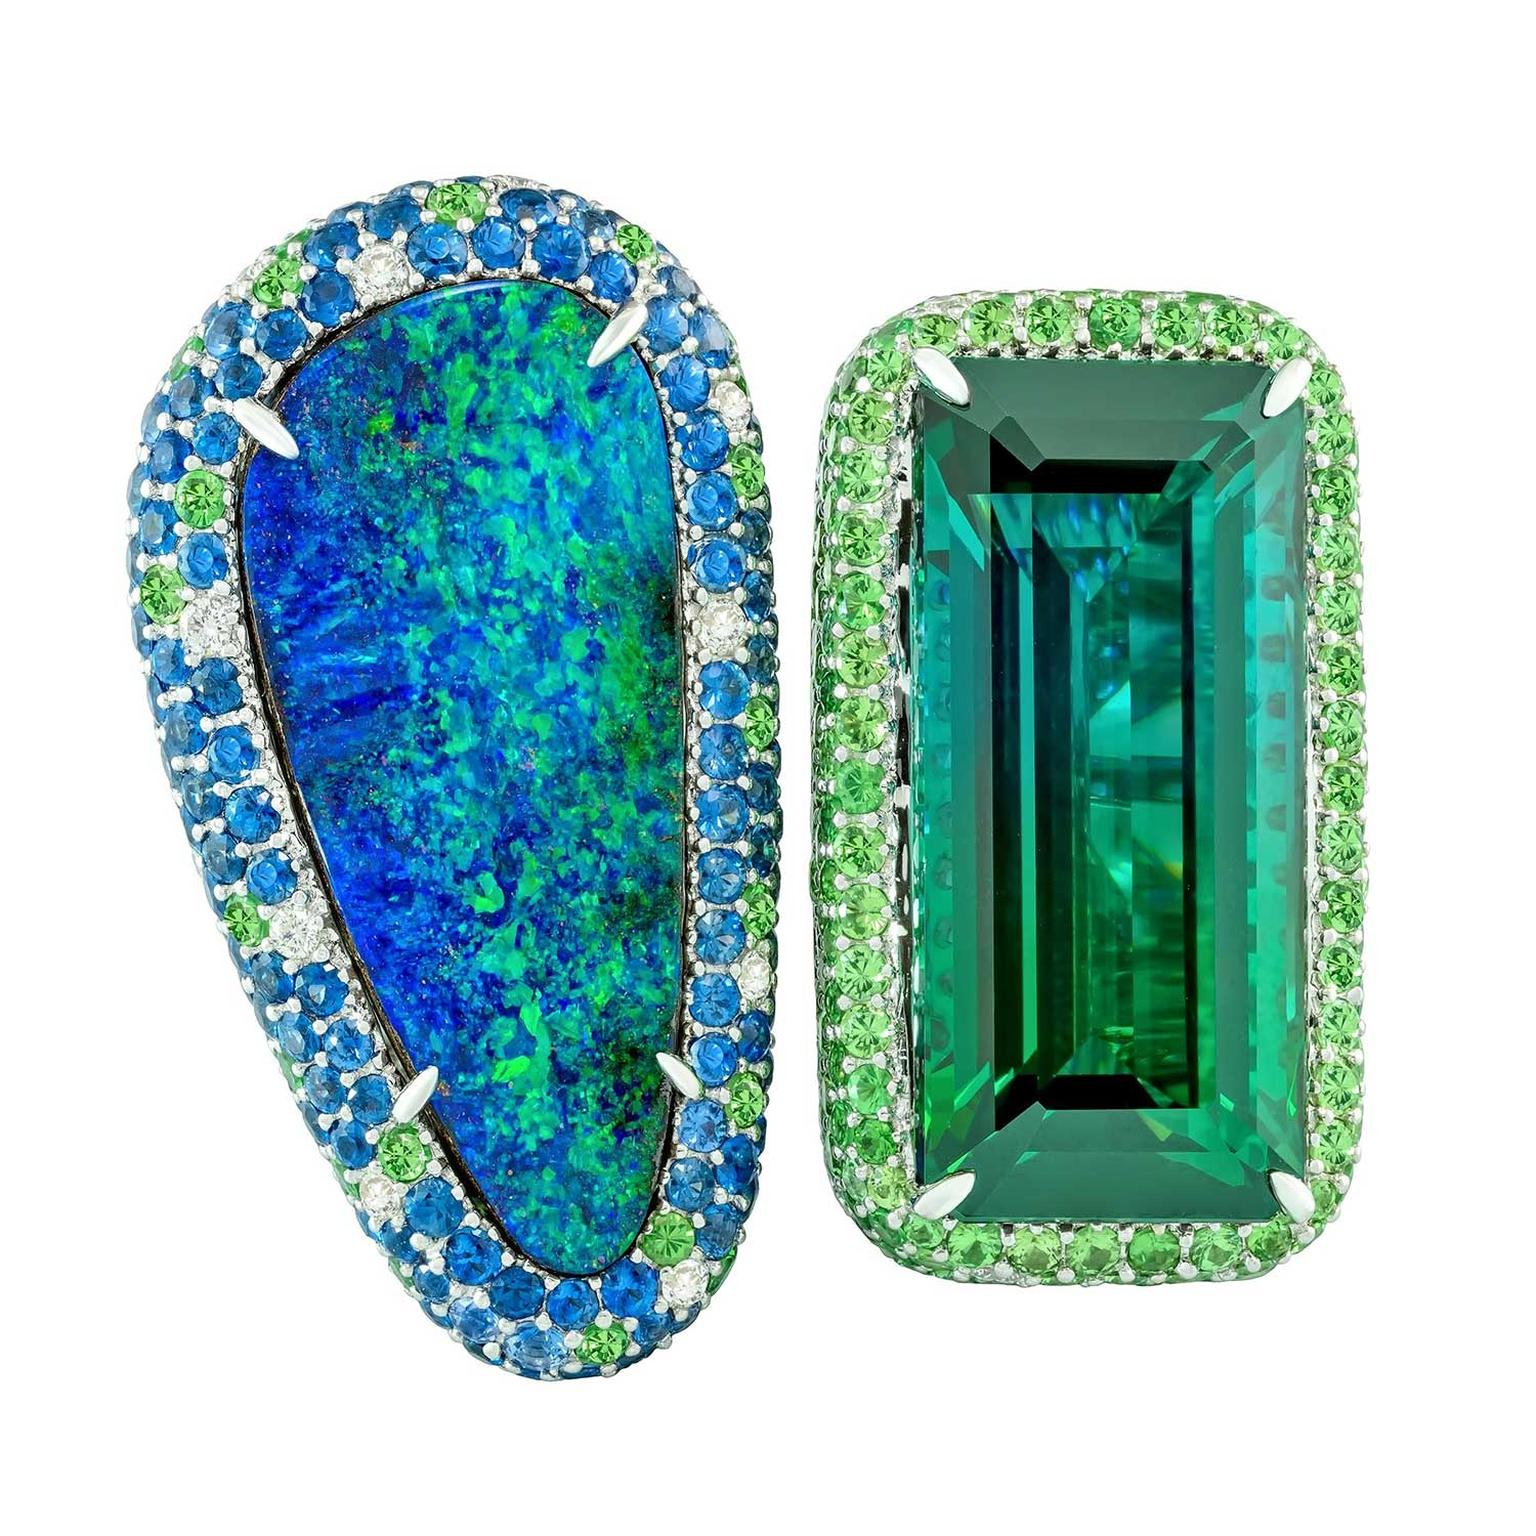 Margot McKinney double ring featuring a bi-coloured green tourmaline and an Australian Lightning Ridge opal